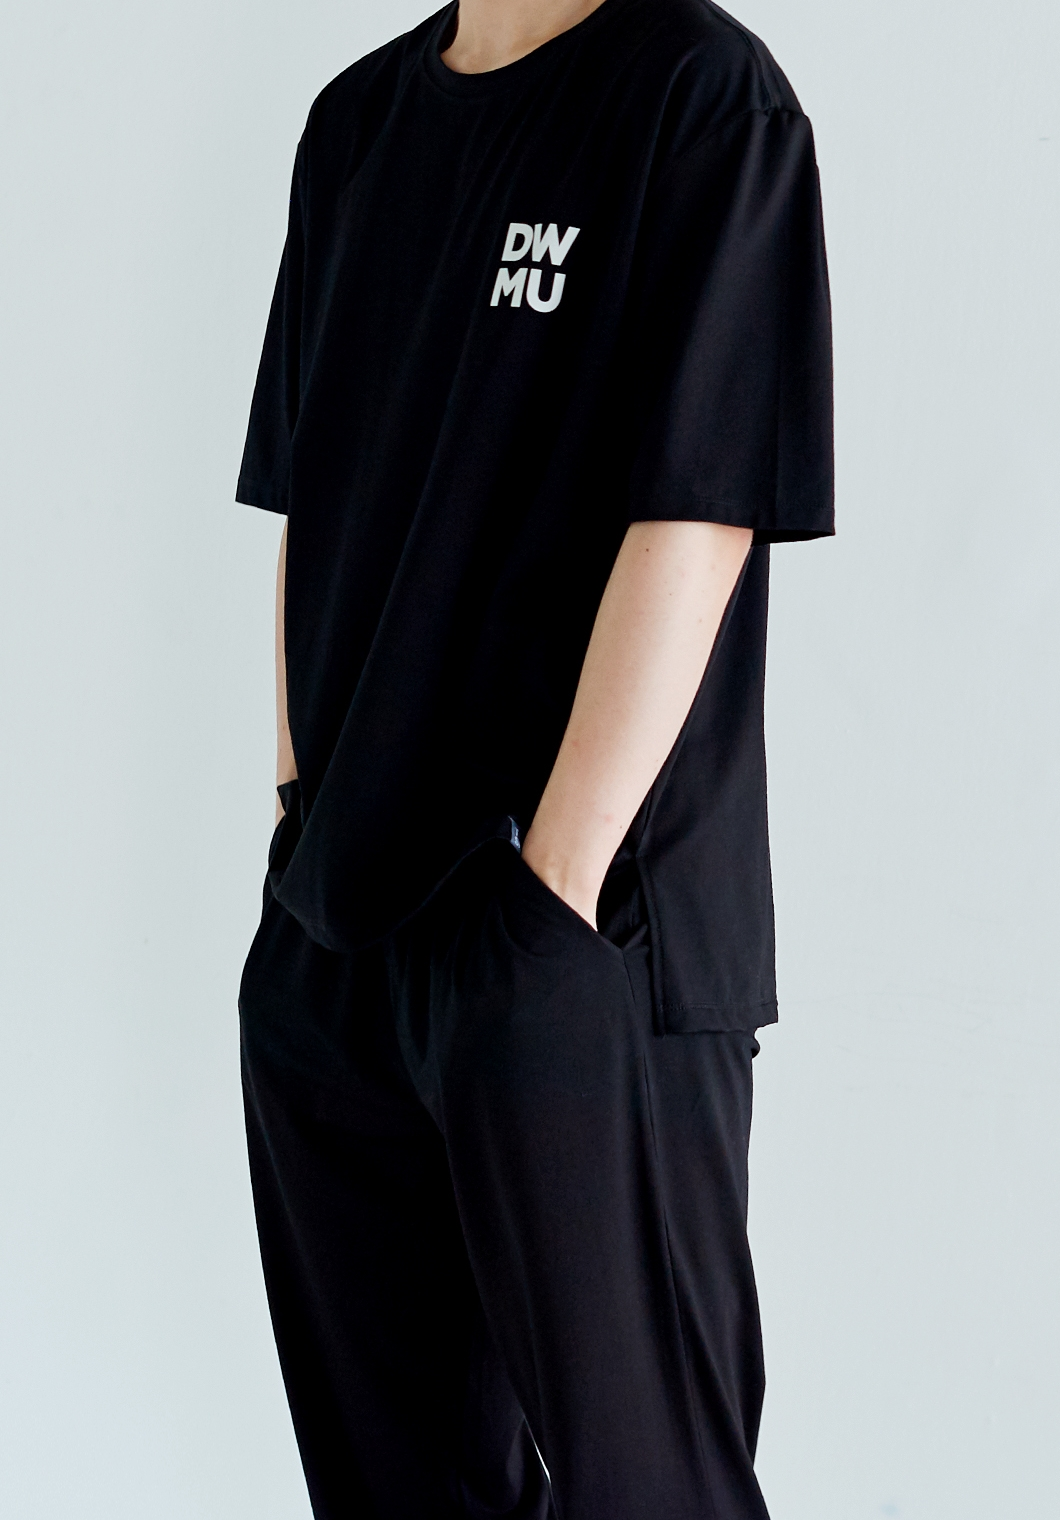 DWMU - Cool Pants 002 (Black) (End of September)